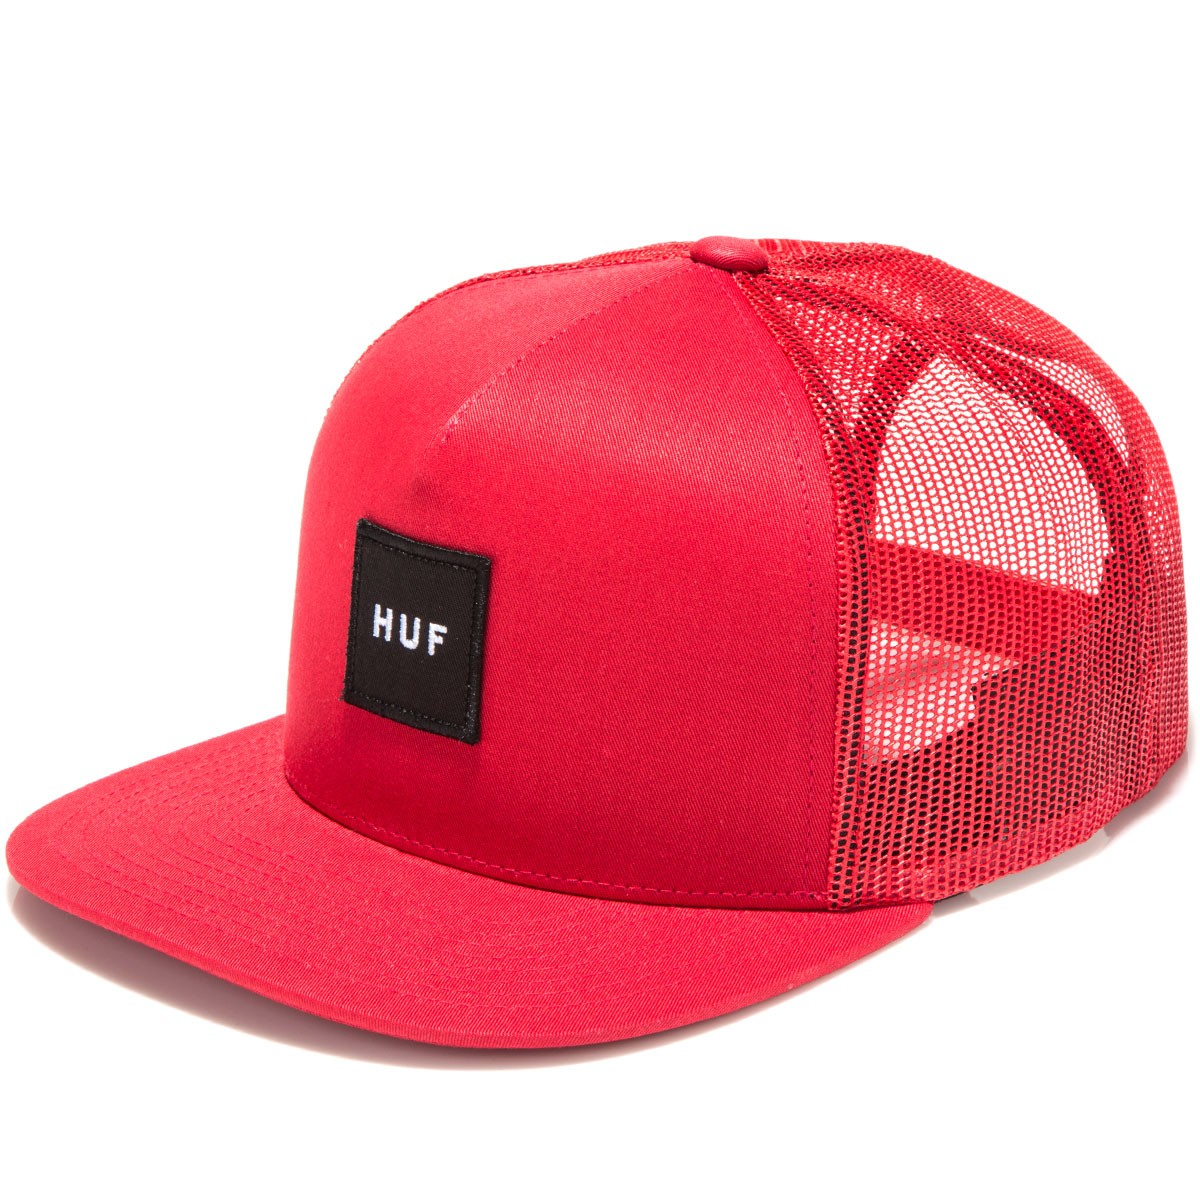 9c050a92277 ... coupon huf box logo trucker hat faf1f 9d40d